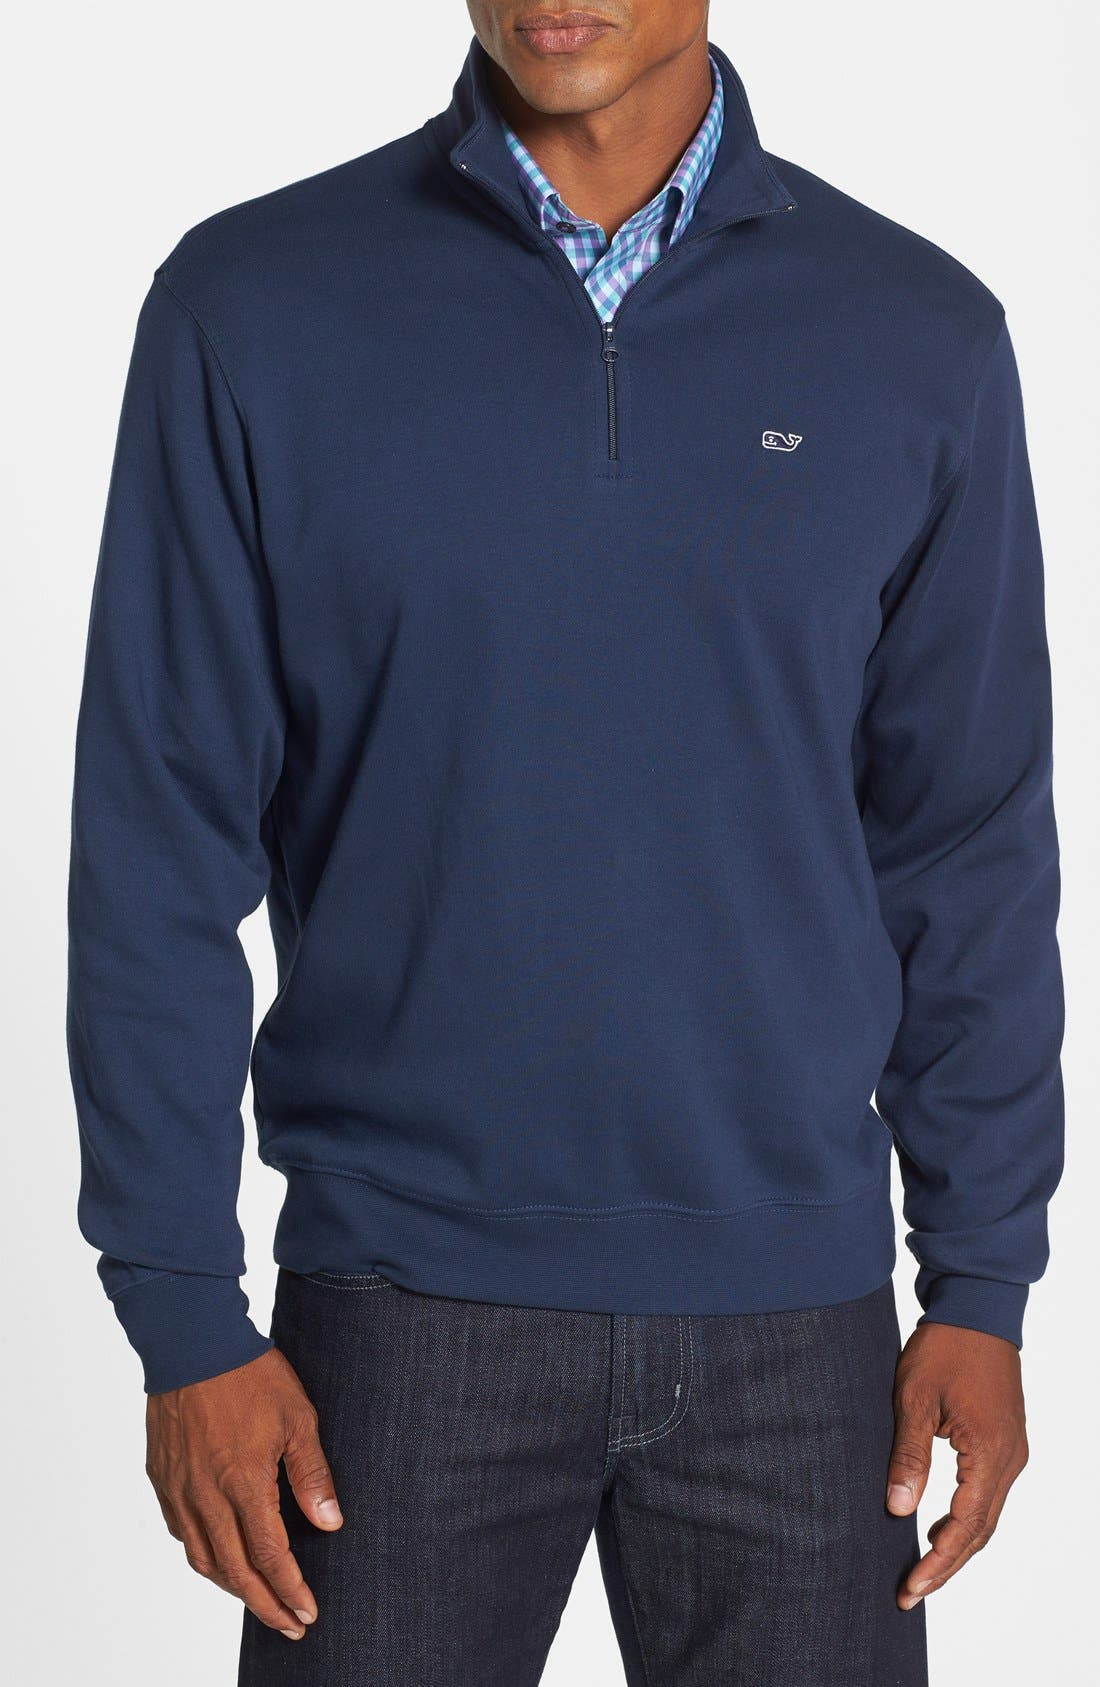 Main Image - Vineyard Vines Quarter Zip Cotton Jersey Sweatshirt